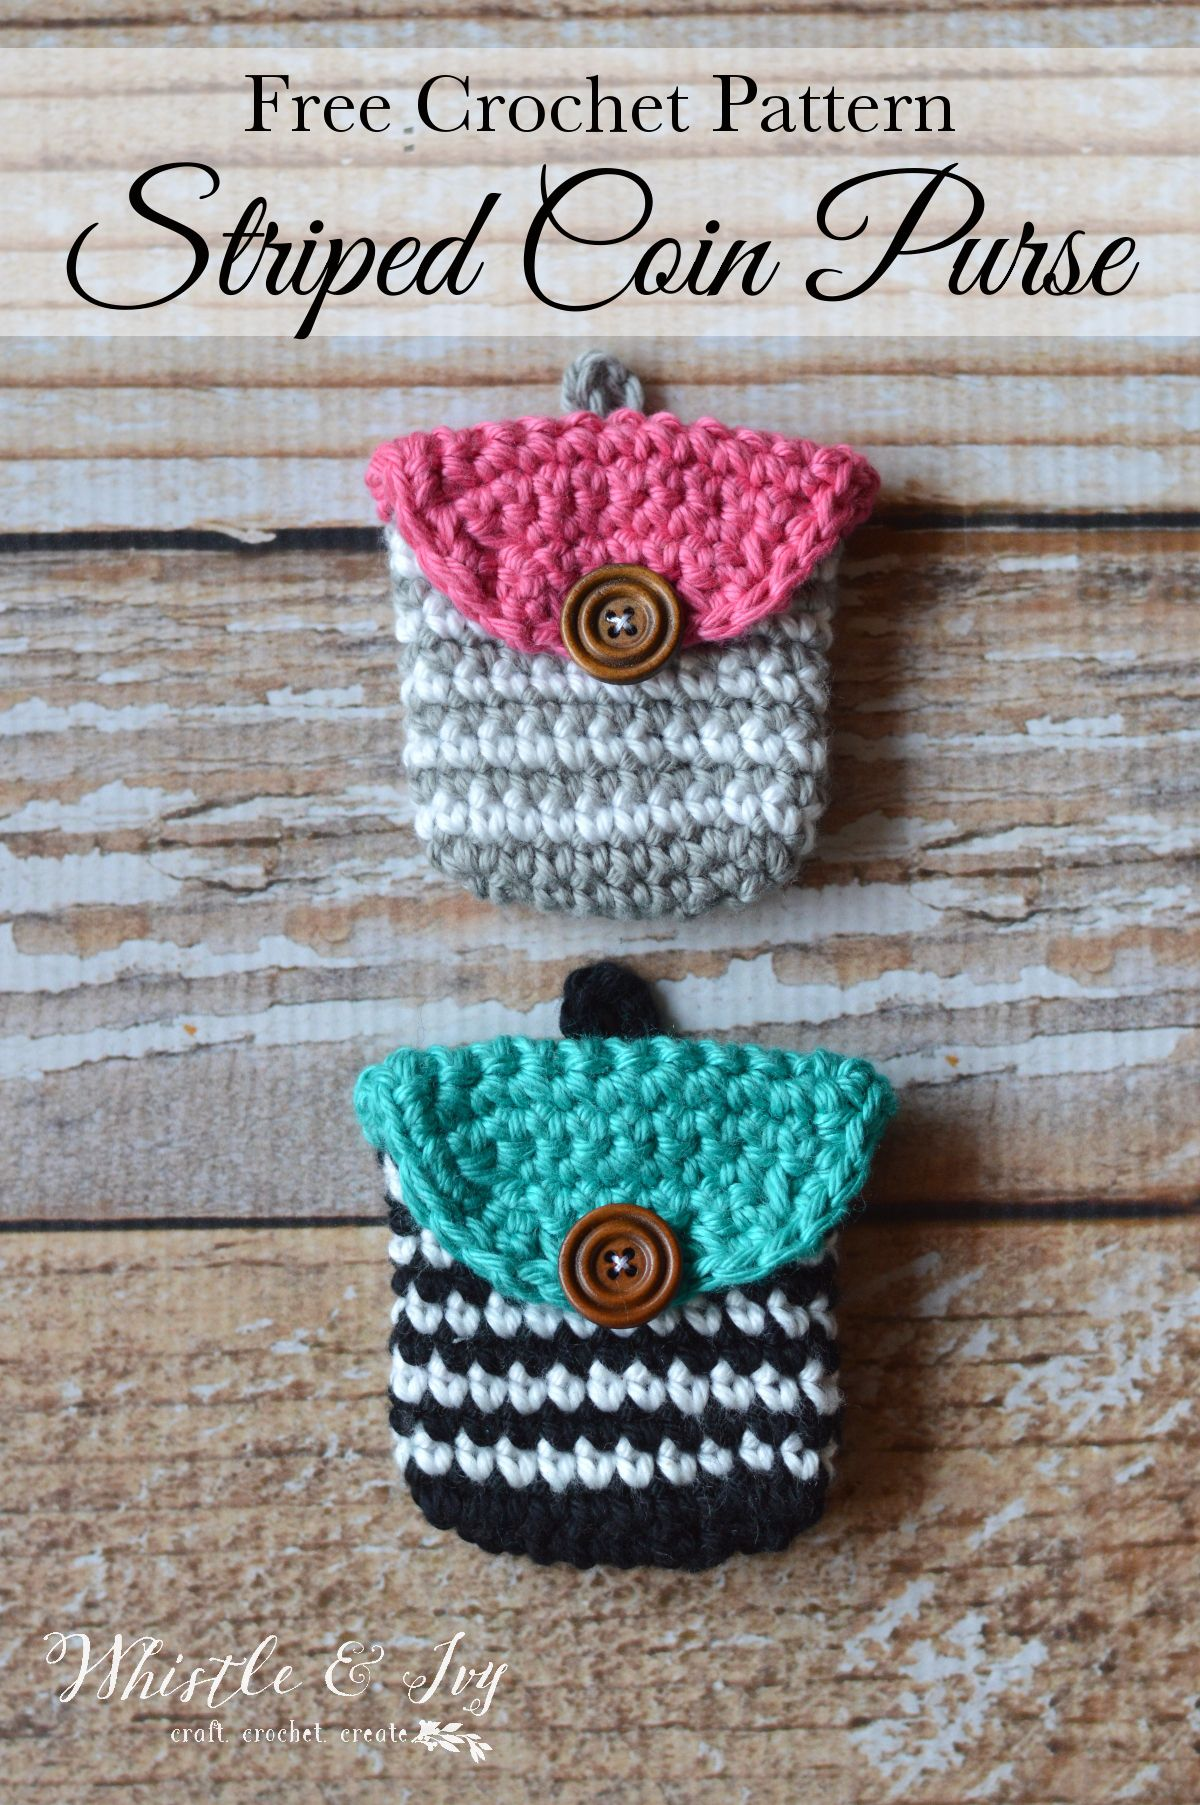 Crochet Striped Coin Purse | Pinterest | Häkeln, Häkeln feste ...